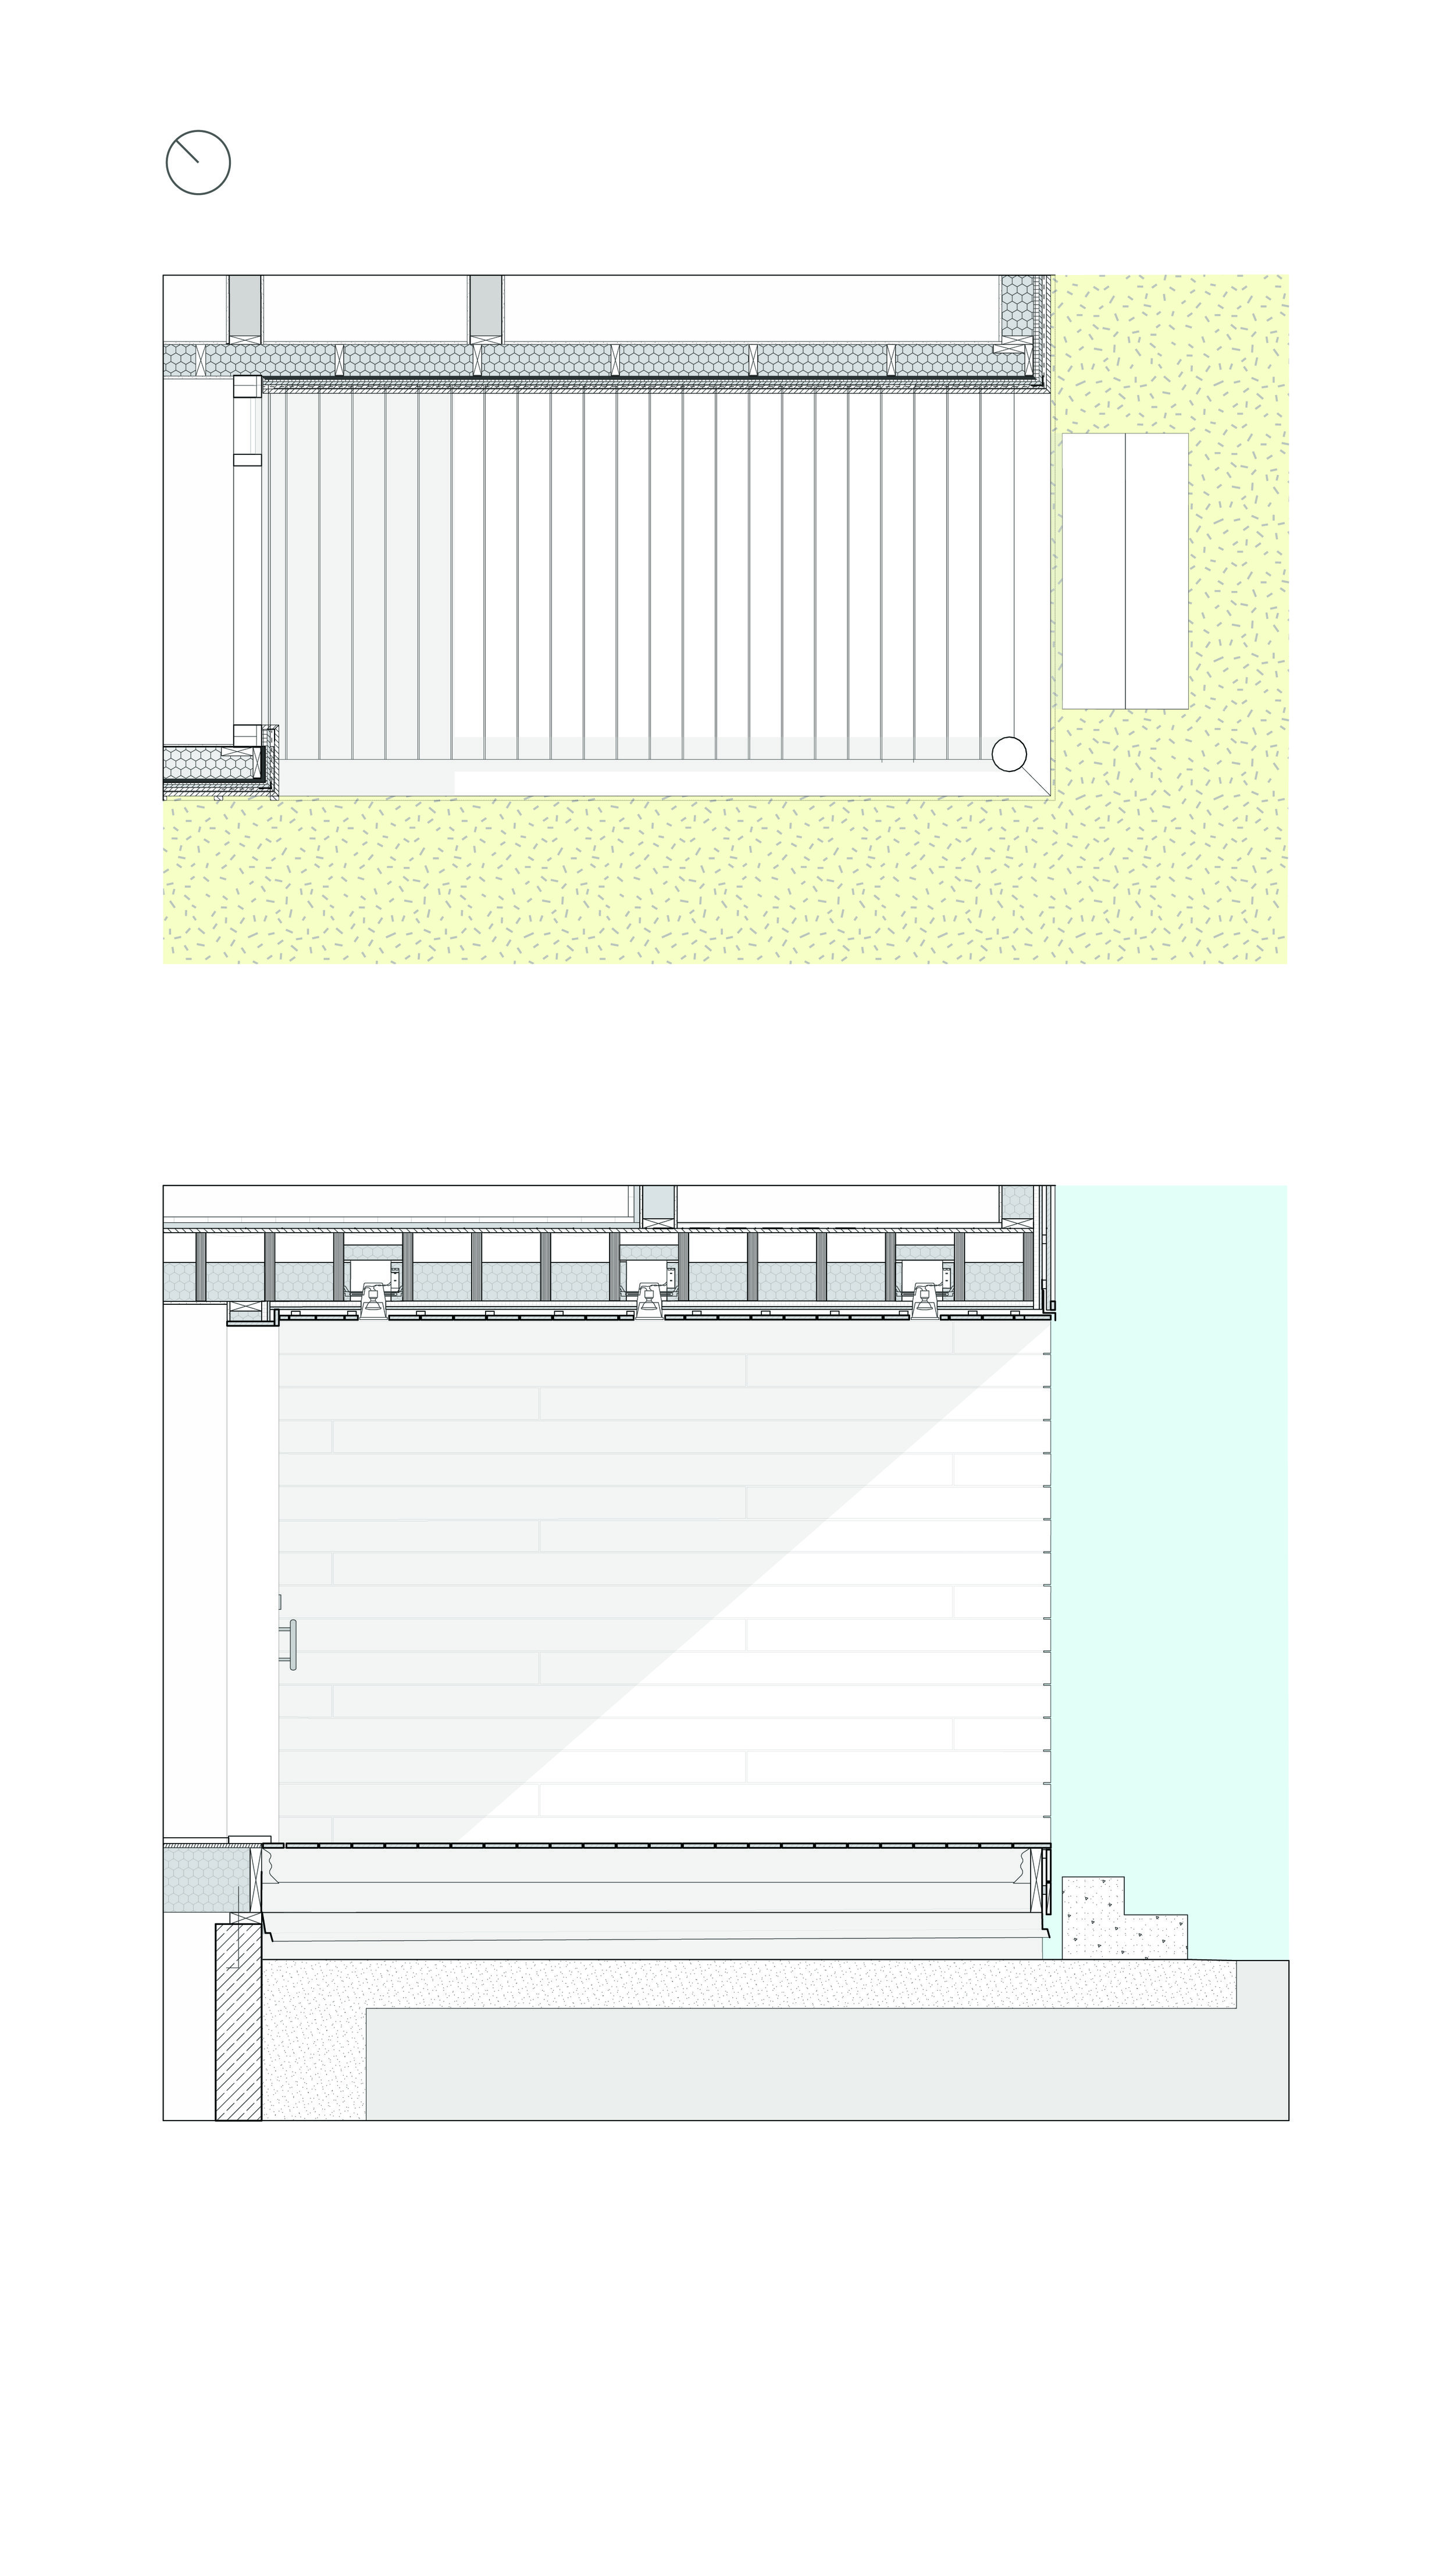 180624_KOZ Entry_Design drawing-01.jpg